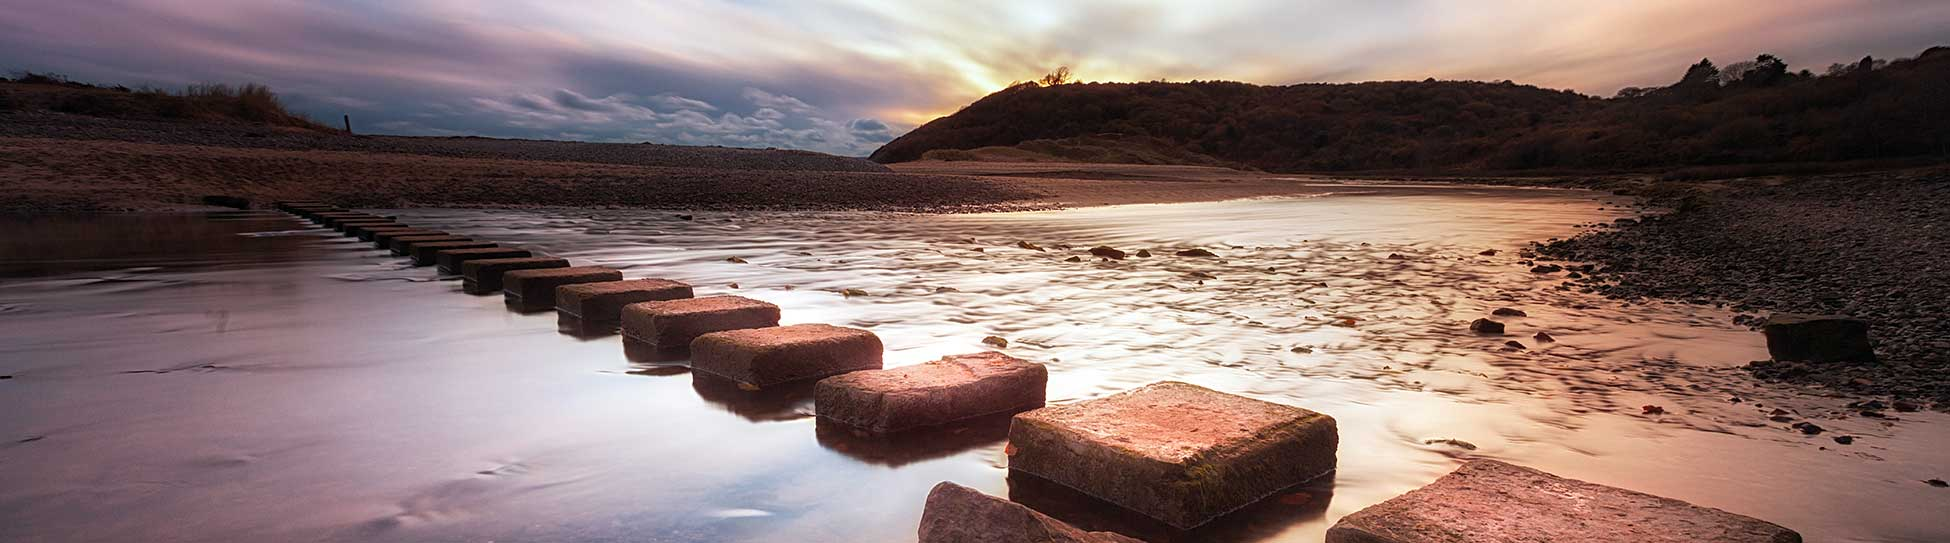 Stepping Stones Across a River - Digital Marketing Group